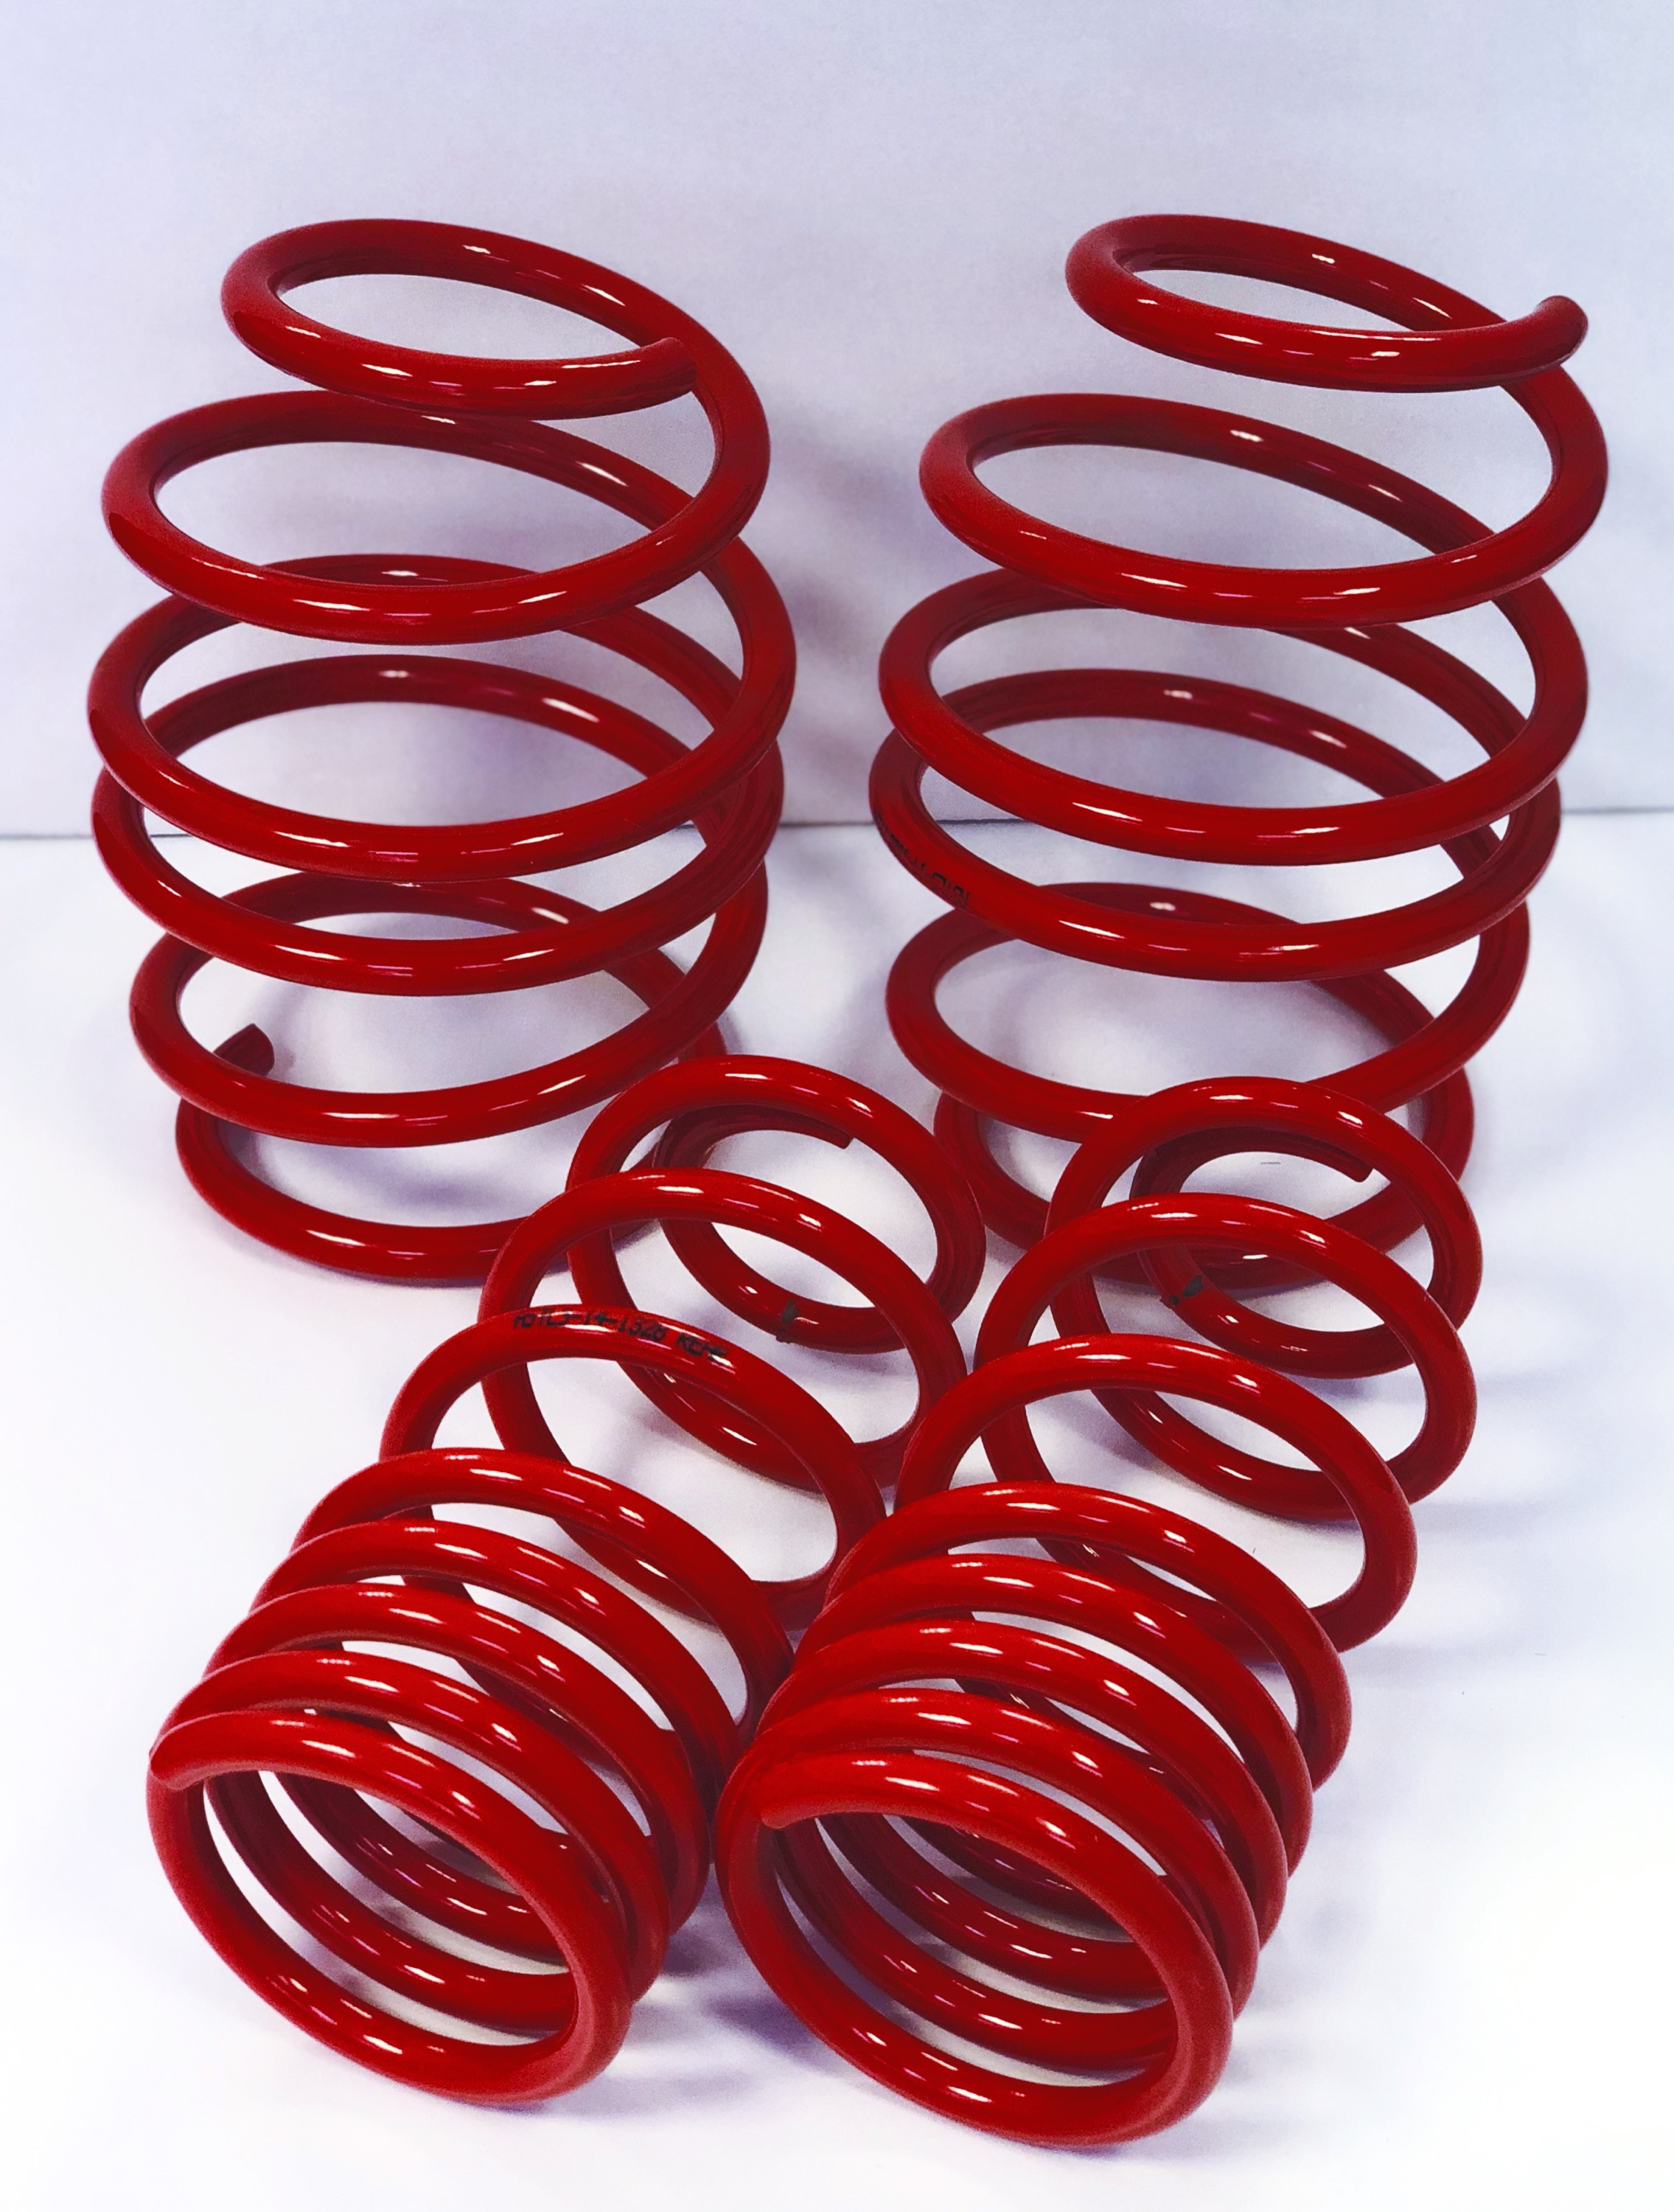 Skoda OCTAVIA AST Suspension Lowering Springs 30MM